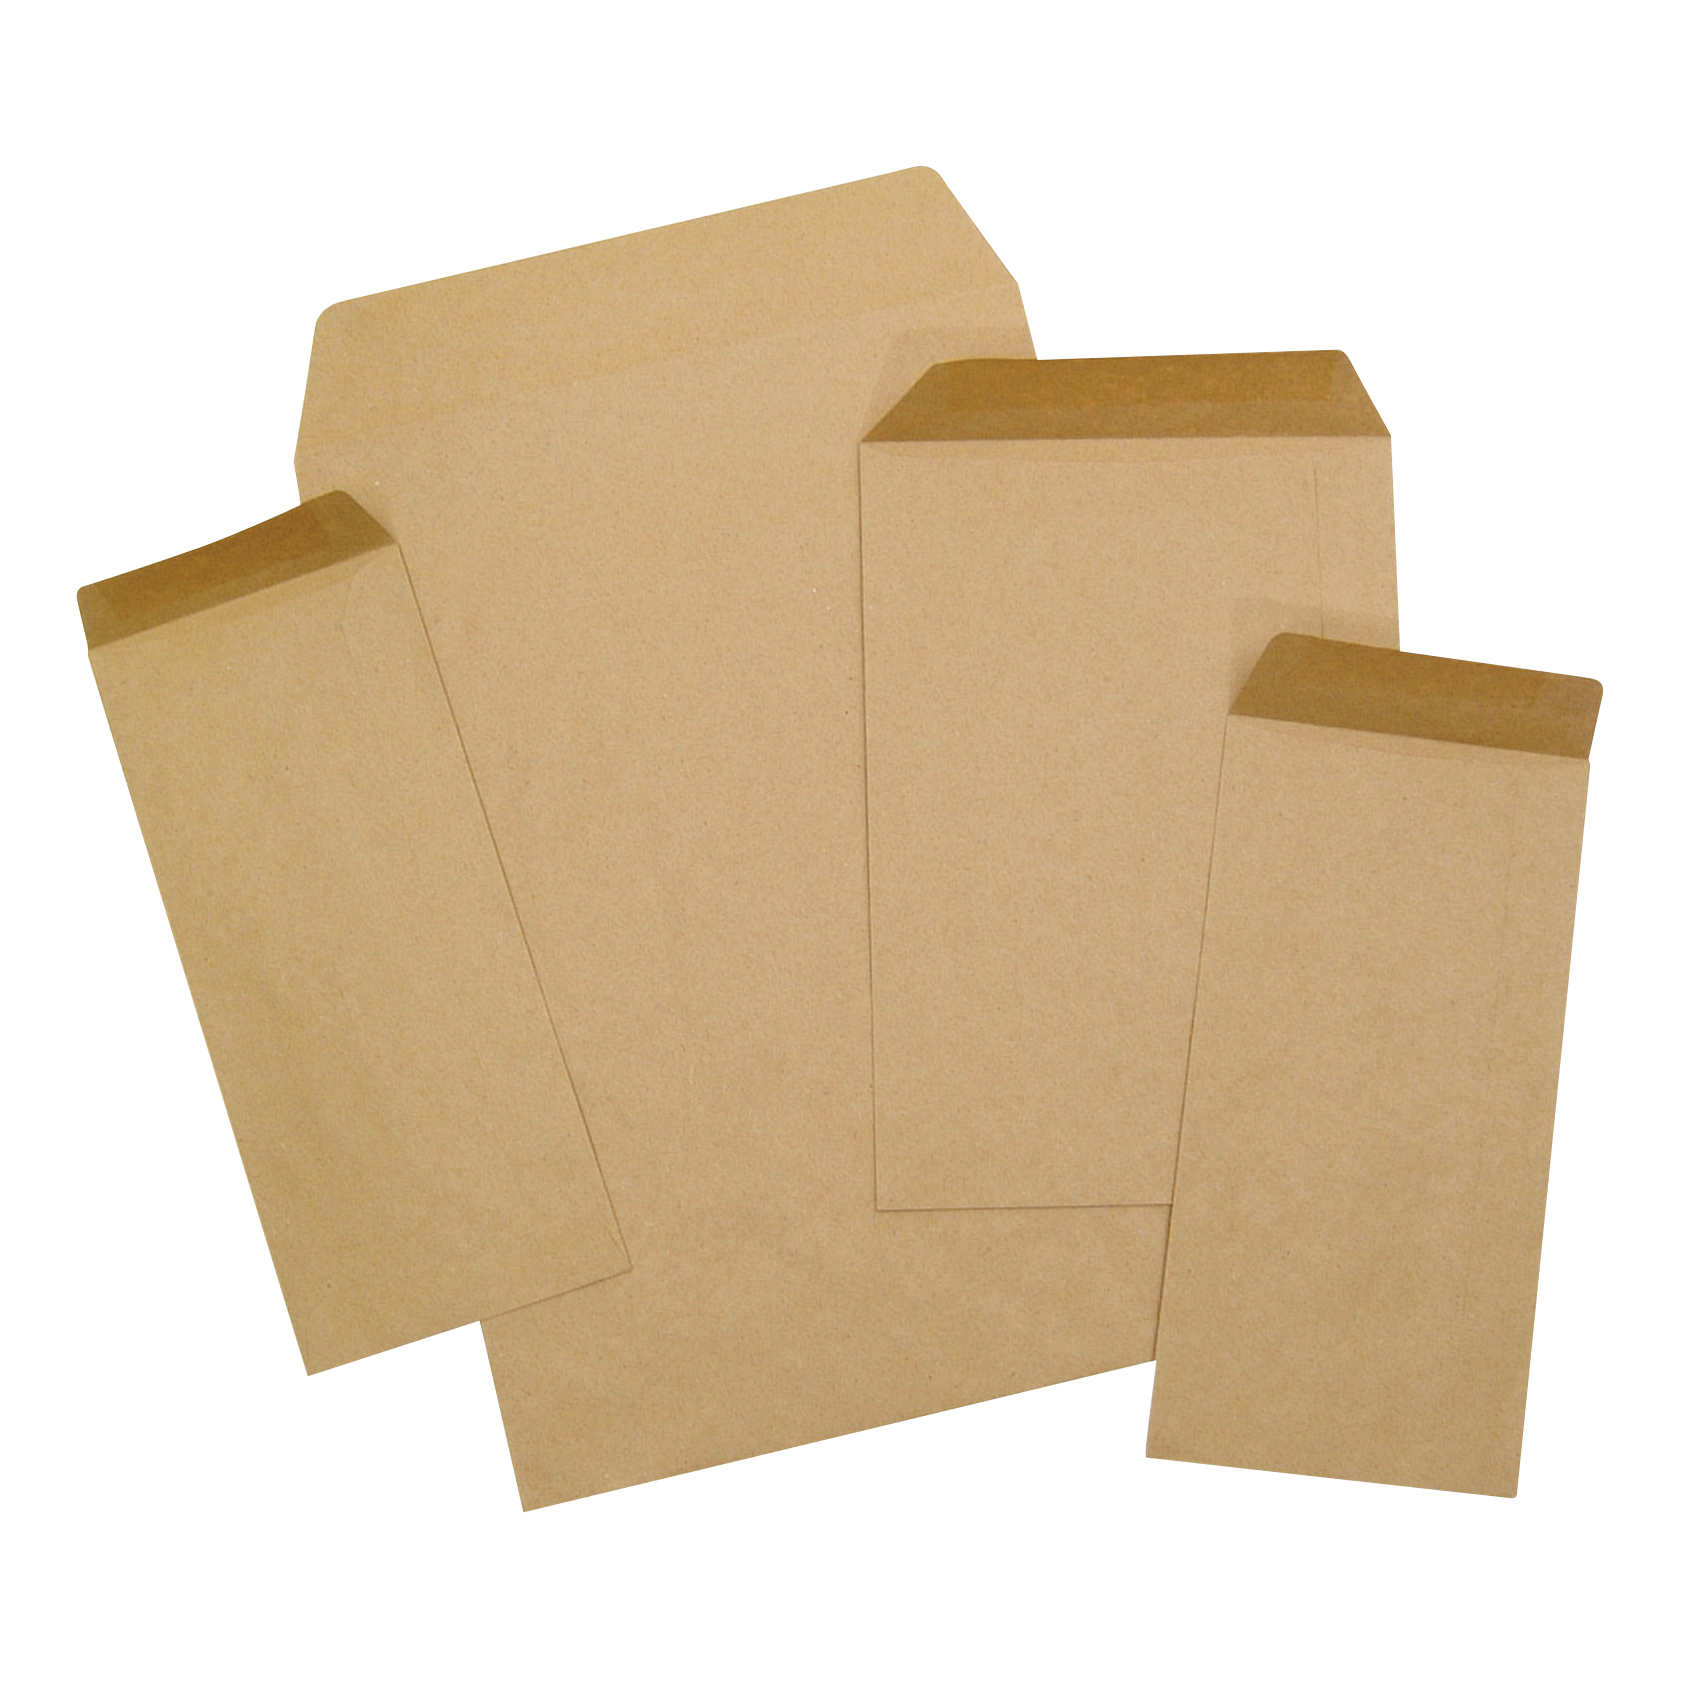 DL 5 Star Office Envelopes FSC Pocket Recycled Gummed 80gsm DL 220x110mm Manilla Pack 1000